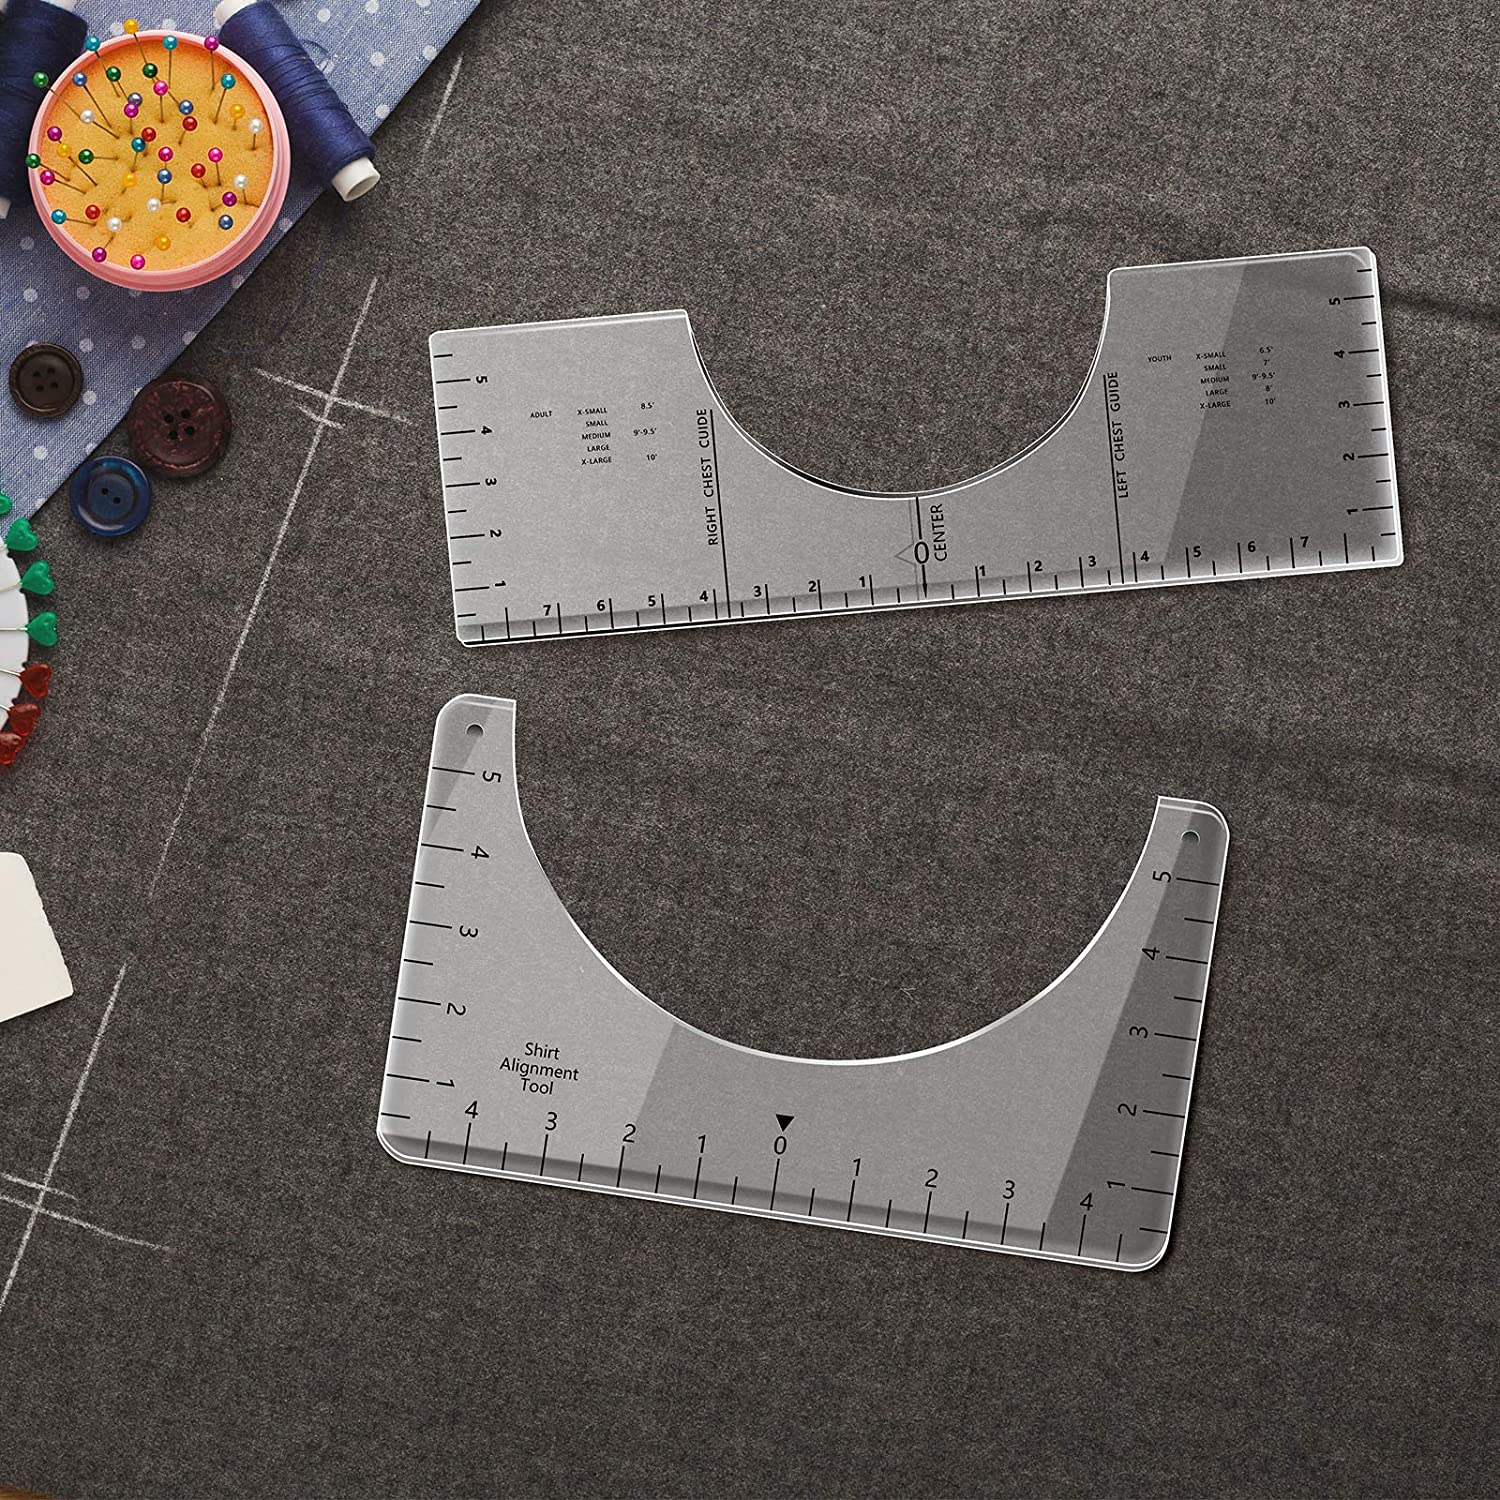 2 Pieces T-Shirt Alignment Tool T-Shirt Ruler Guide T-Shirt Vinyl Ruler Guide Sublimation Designs on T-Shirt Transparent Acrylic Centering Ruler with Size Chart for Fabric Cutting File Supplies